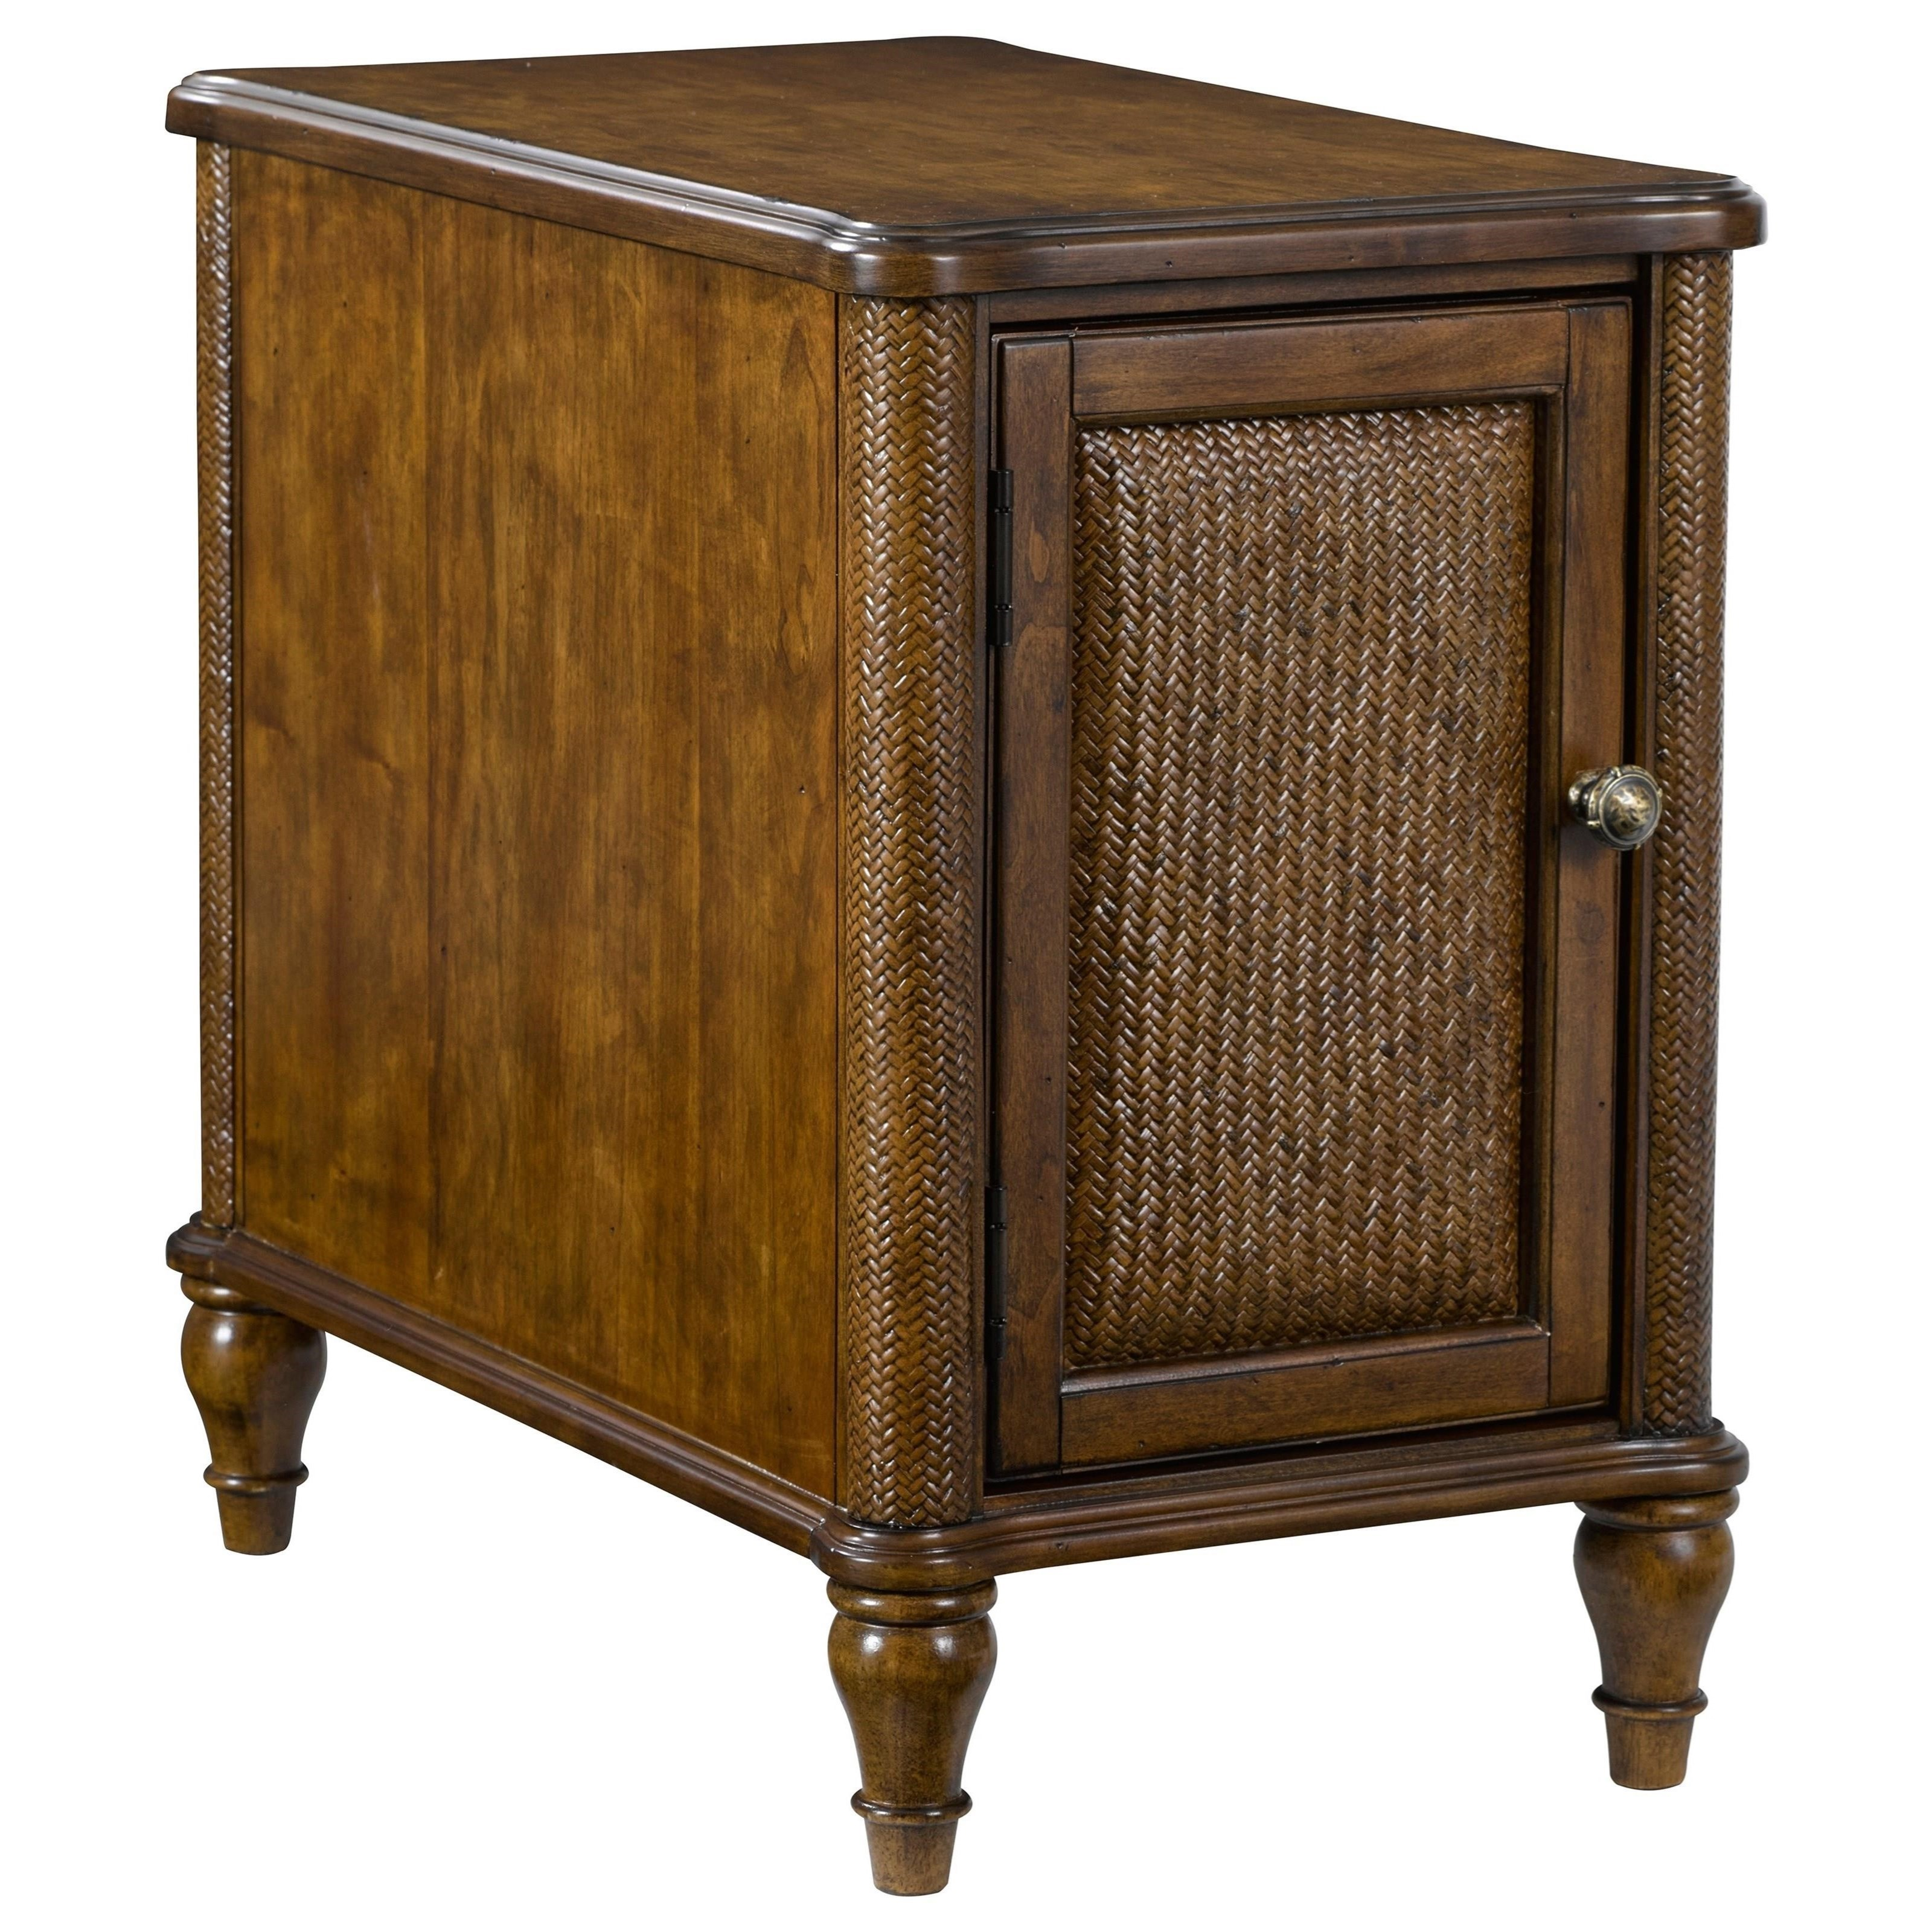 Broyhill Furniture Amalie Bay Chairside Table - Item Number: 4548-004